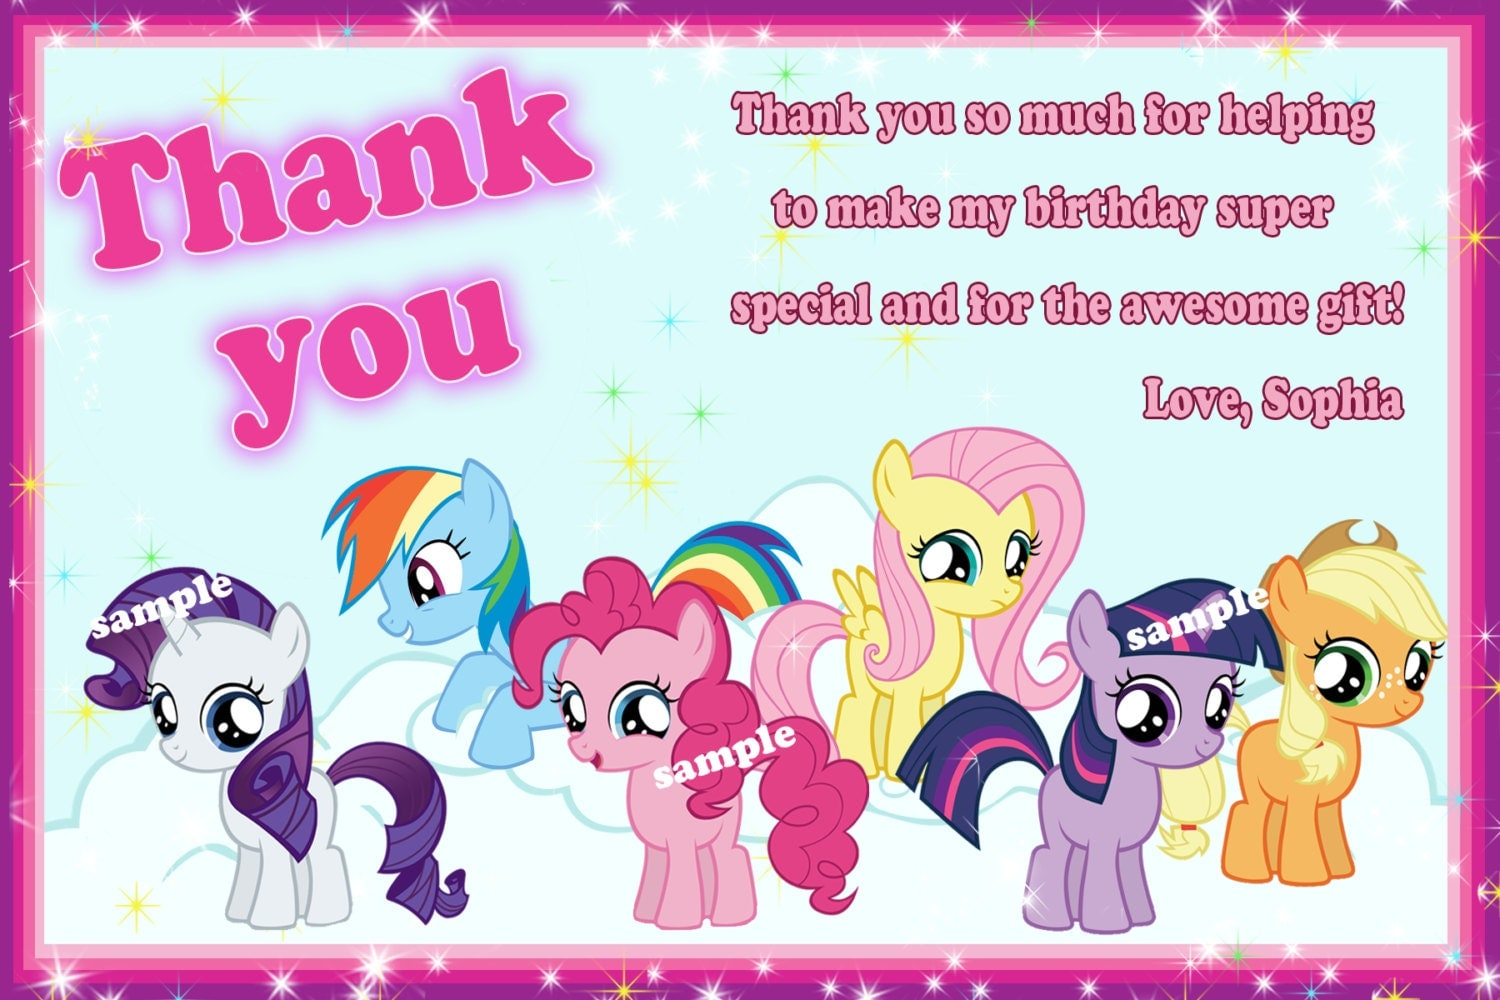 My little pony thank you card My little pony by SuperBirthdayParty: https://www.etsy.com/listing/158168042/my-little-pony-thank-you...